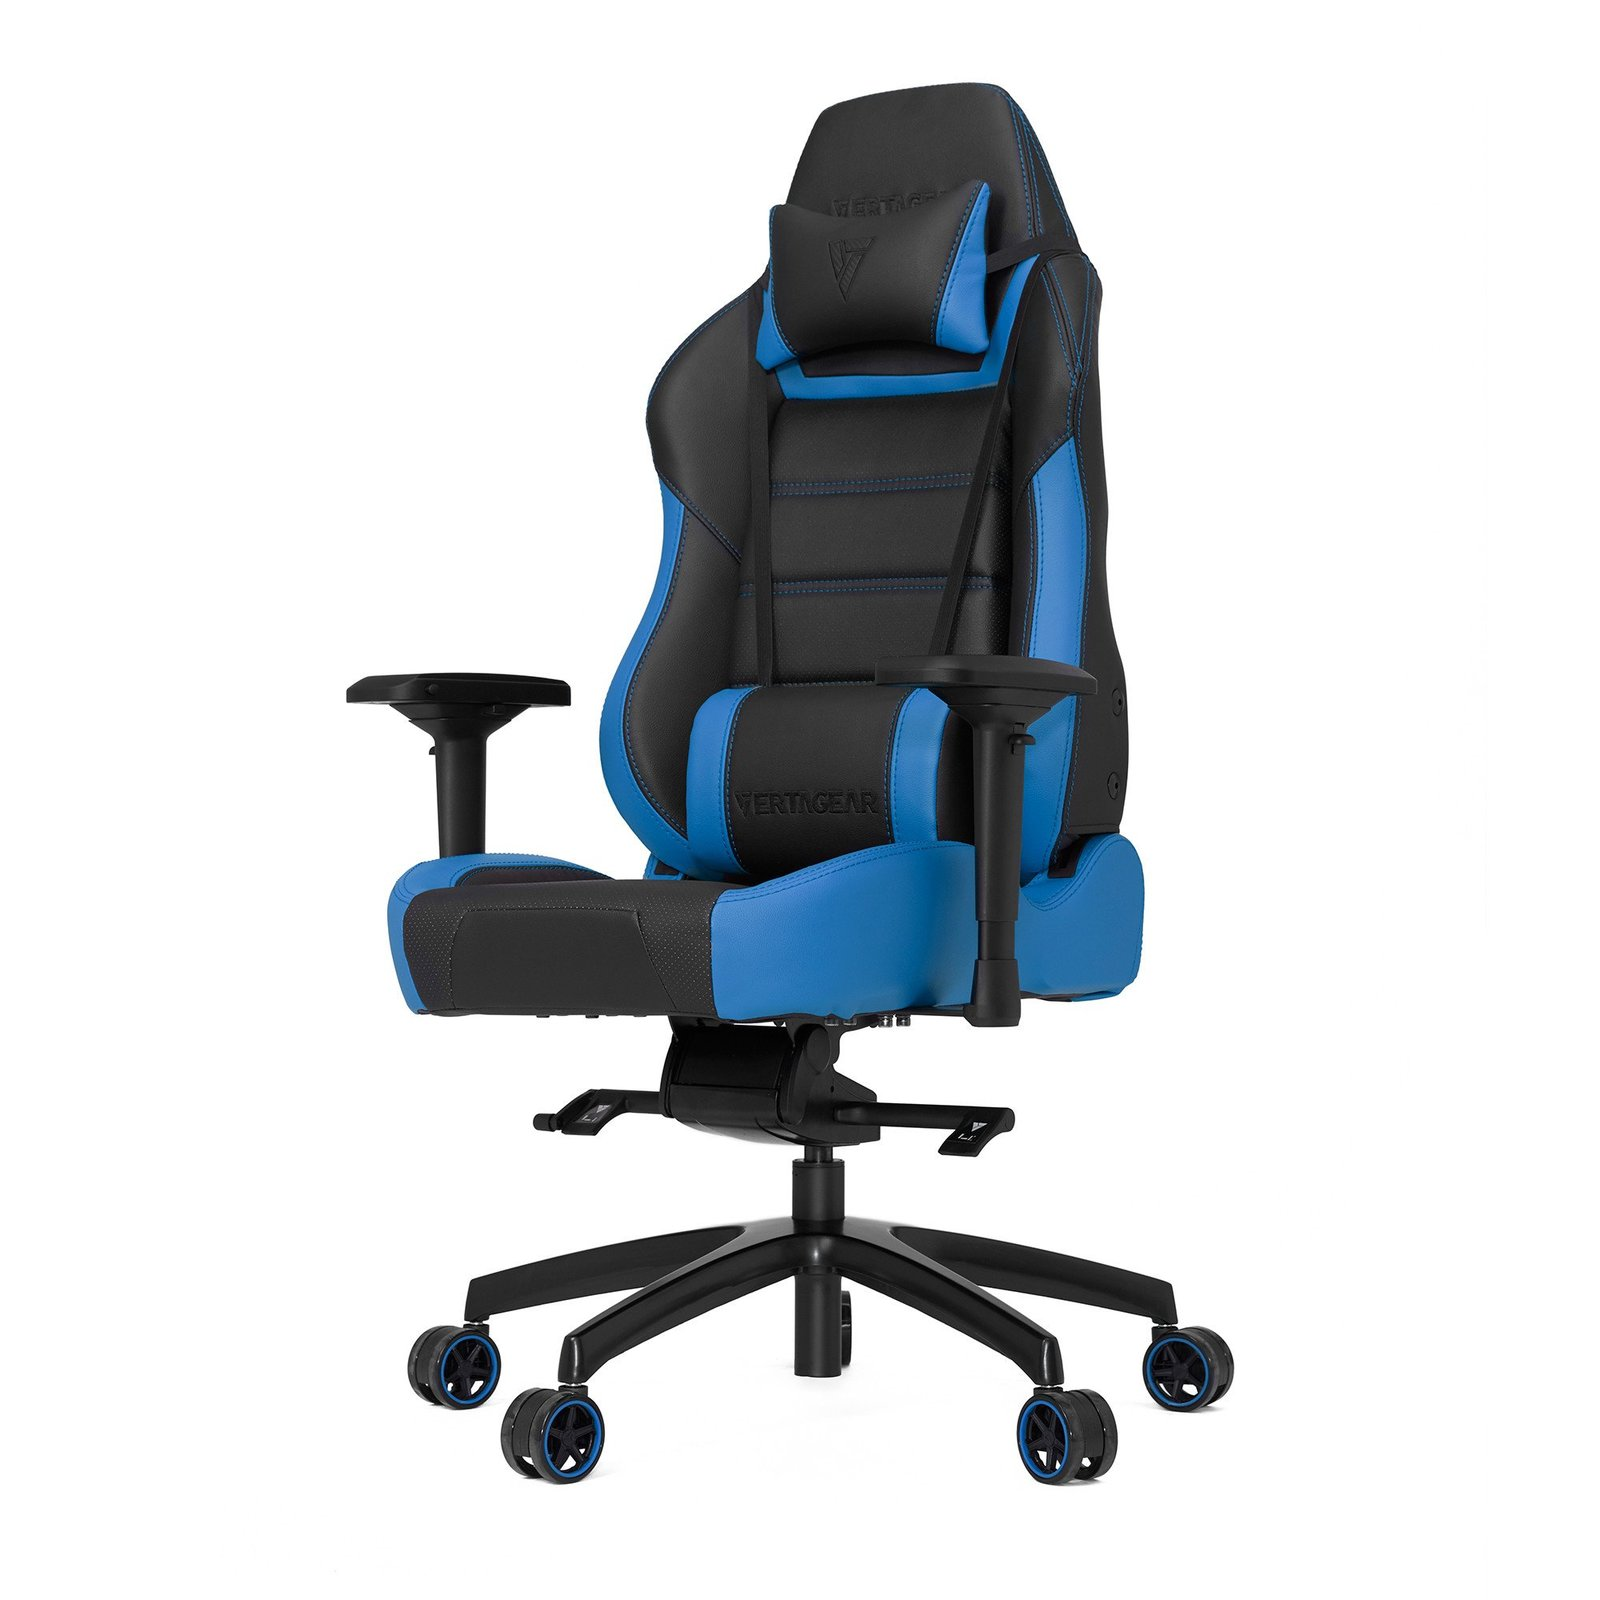 Vertagear Racing Series S-Line PL6000 Gaming Chair - Black/Blue for  image